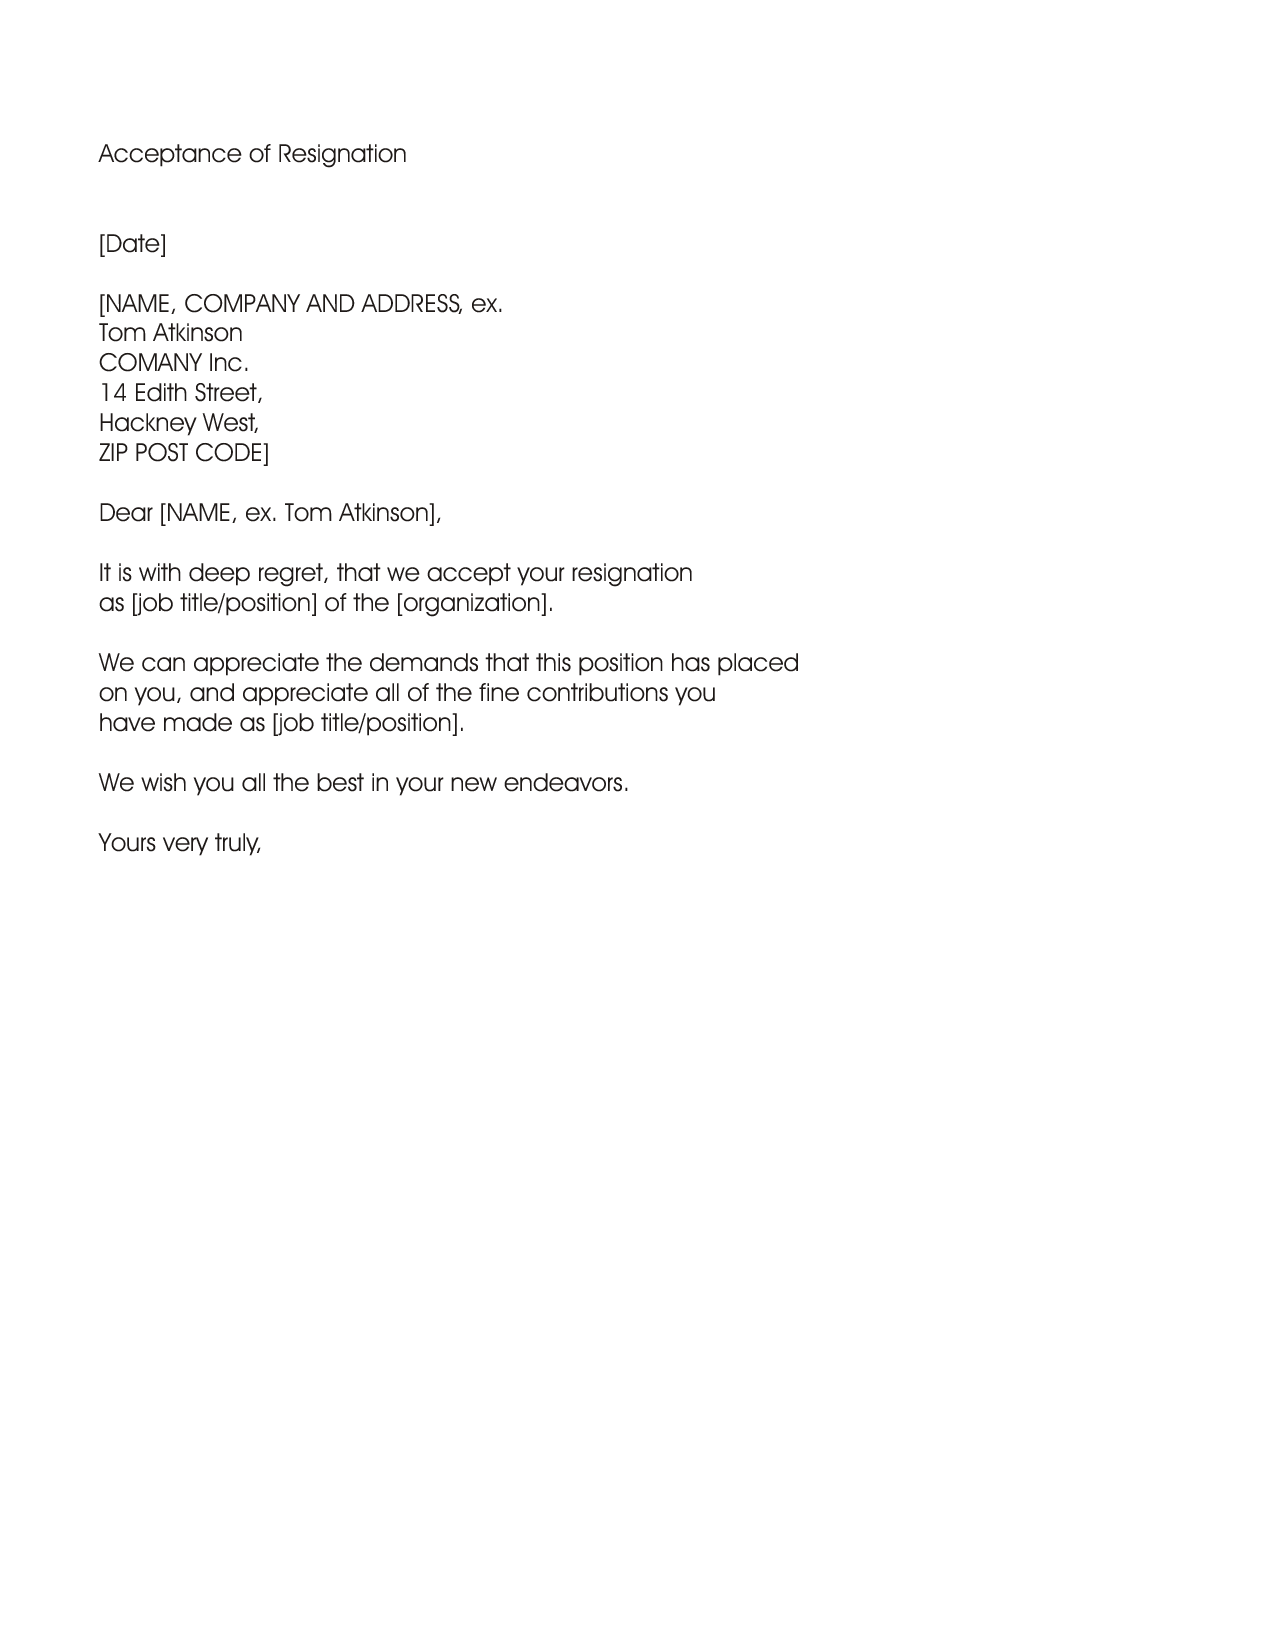 Resignation acceptance letter letter example from accepting an resignation acceptance letter letter example from accepting an employees resignation and confirming the date the resignation is effective spiritdancerdesigns Image collections